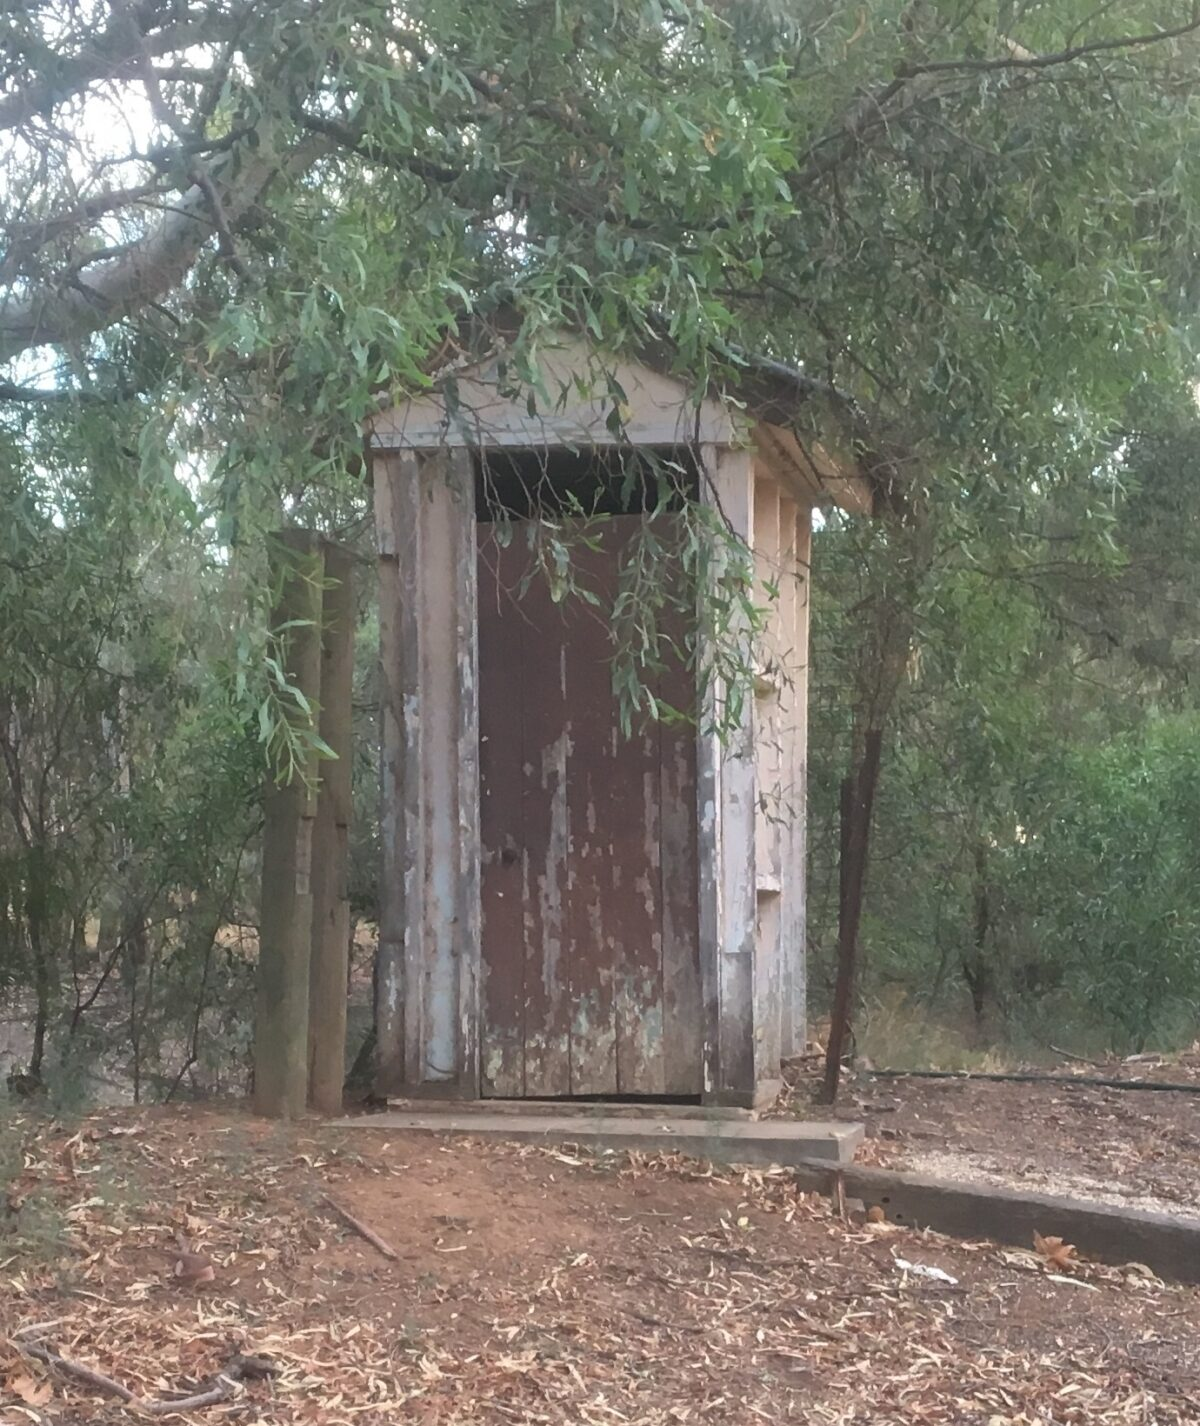 John Holack_Open_The old outhouse